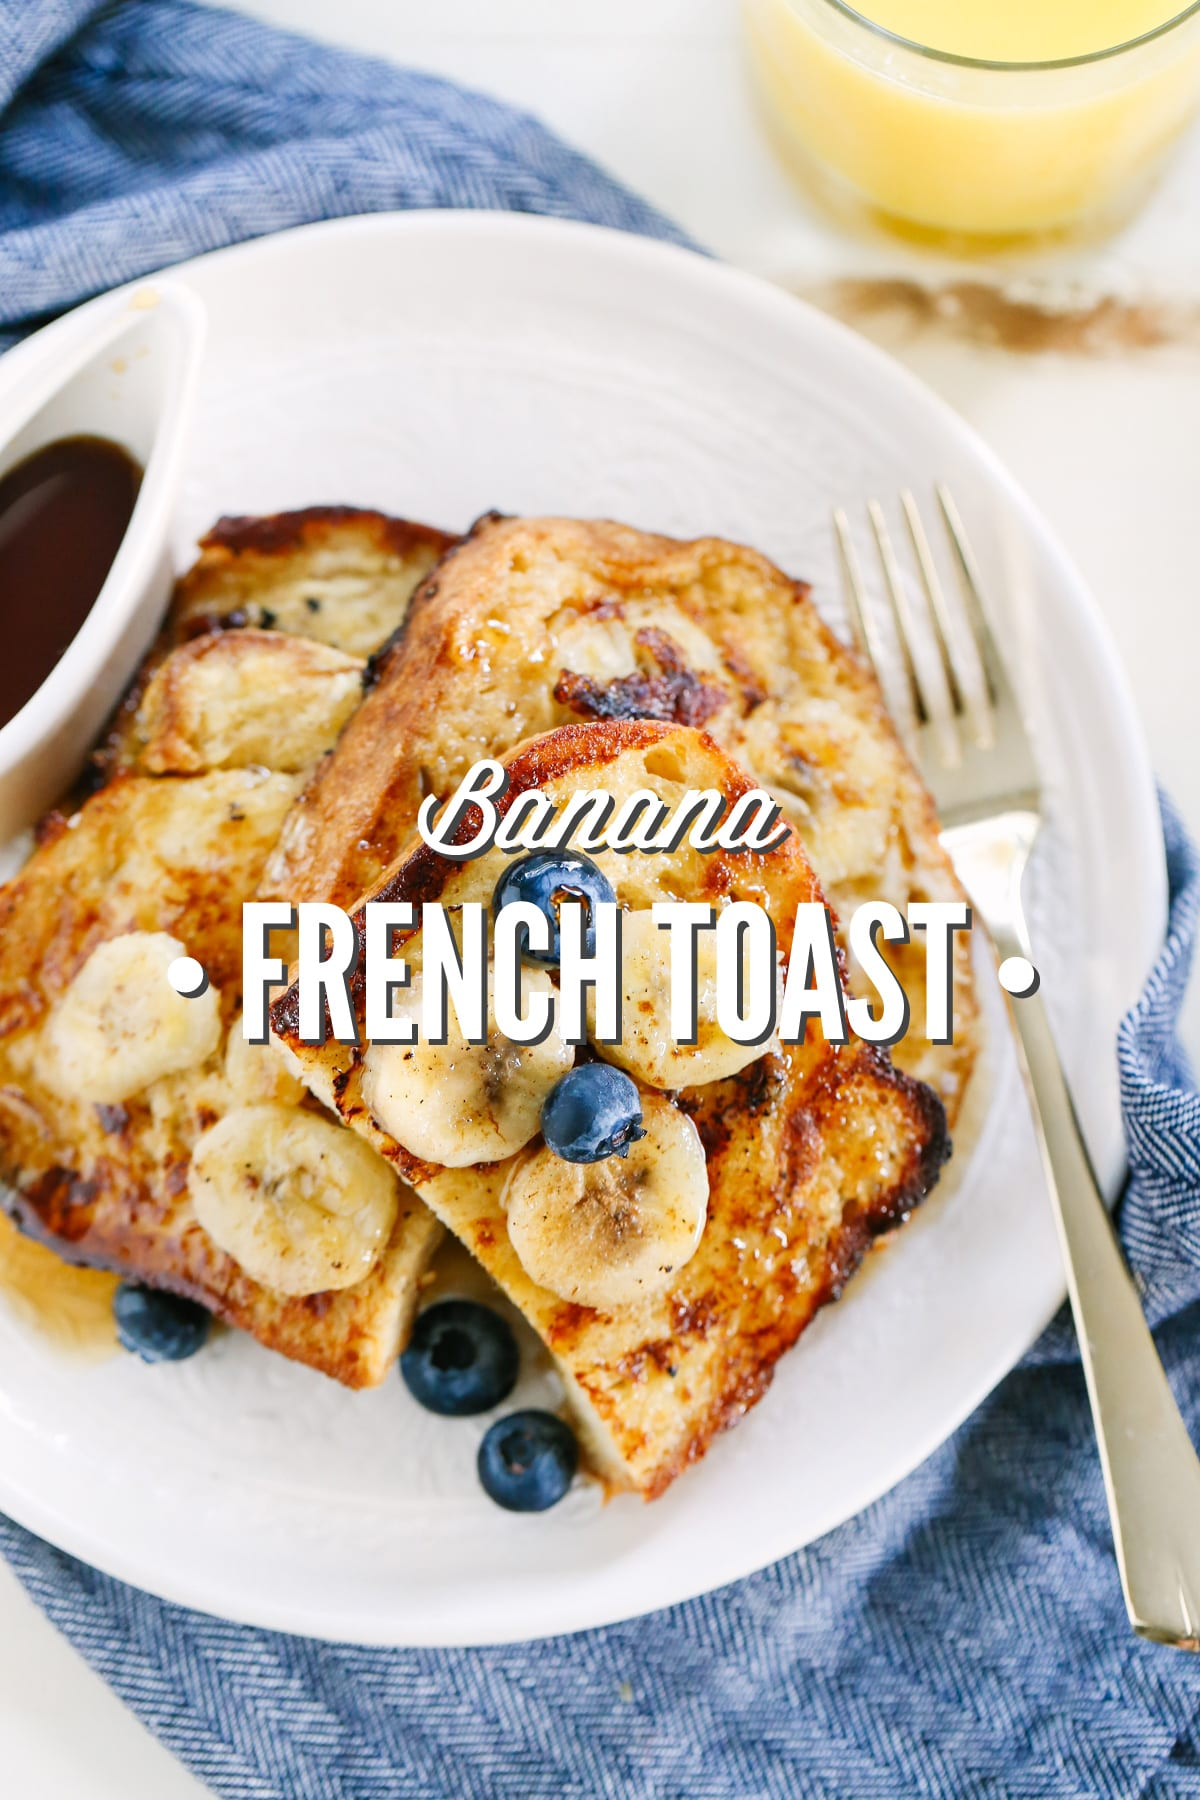 Banana French Toast: So easy and delicious!